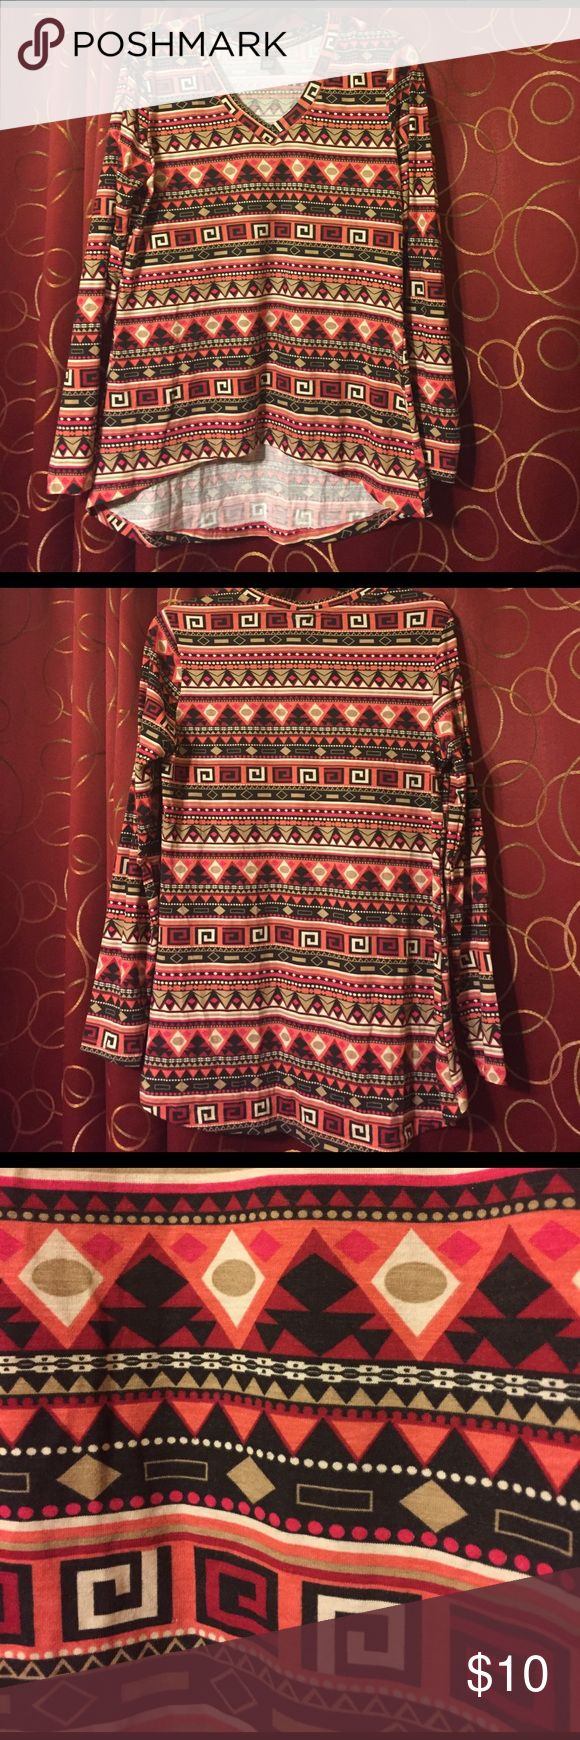 Women's Rue 21 boho/Aztec long sleeve top XL Back is longer. Soft and flowy. Rue 21 Tops